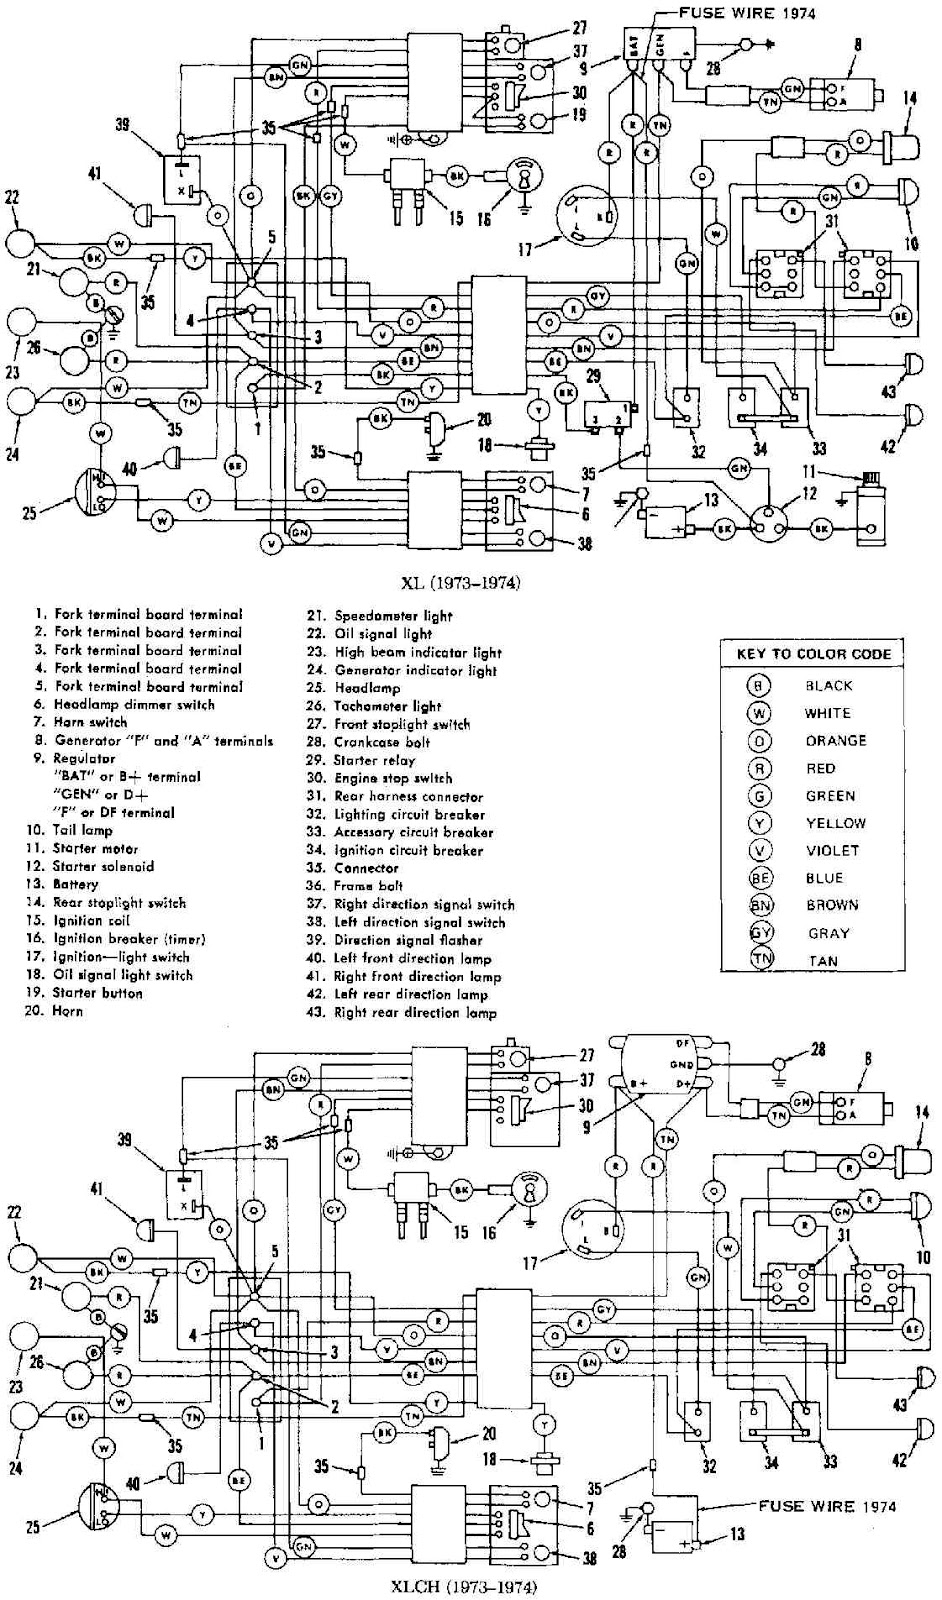 Gm Truck Parts   Gmc Truck Full Colored Wiring - Harley davidson radio wiring diagram